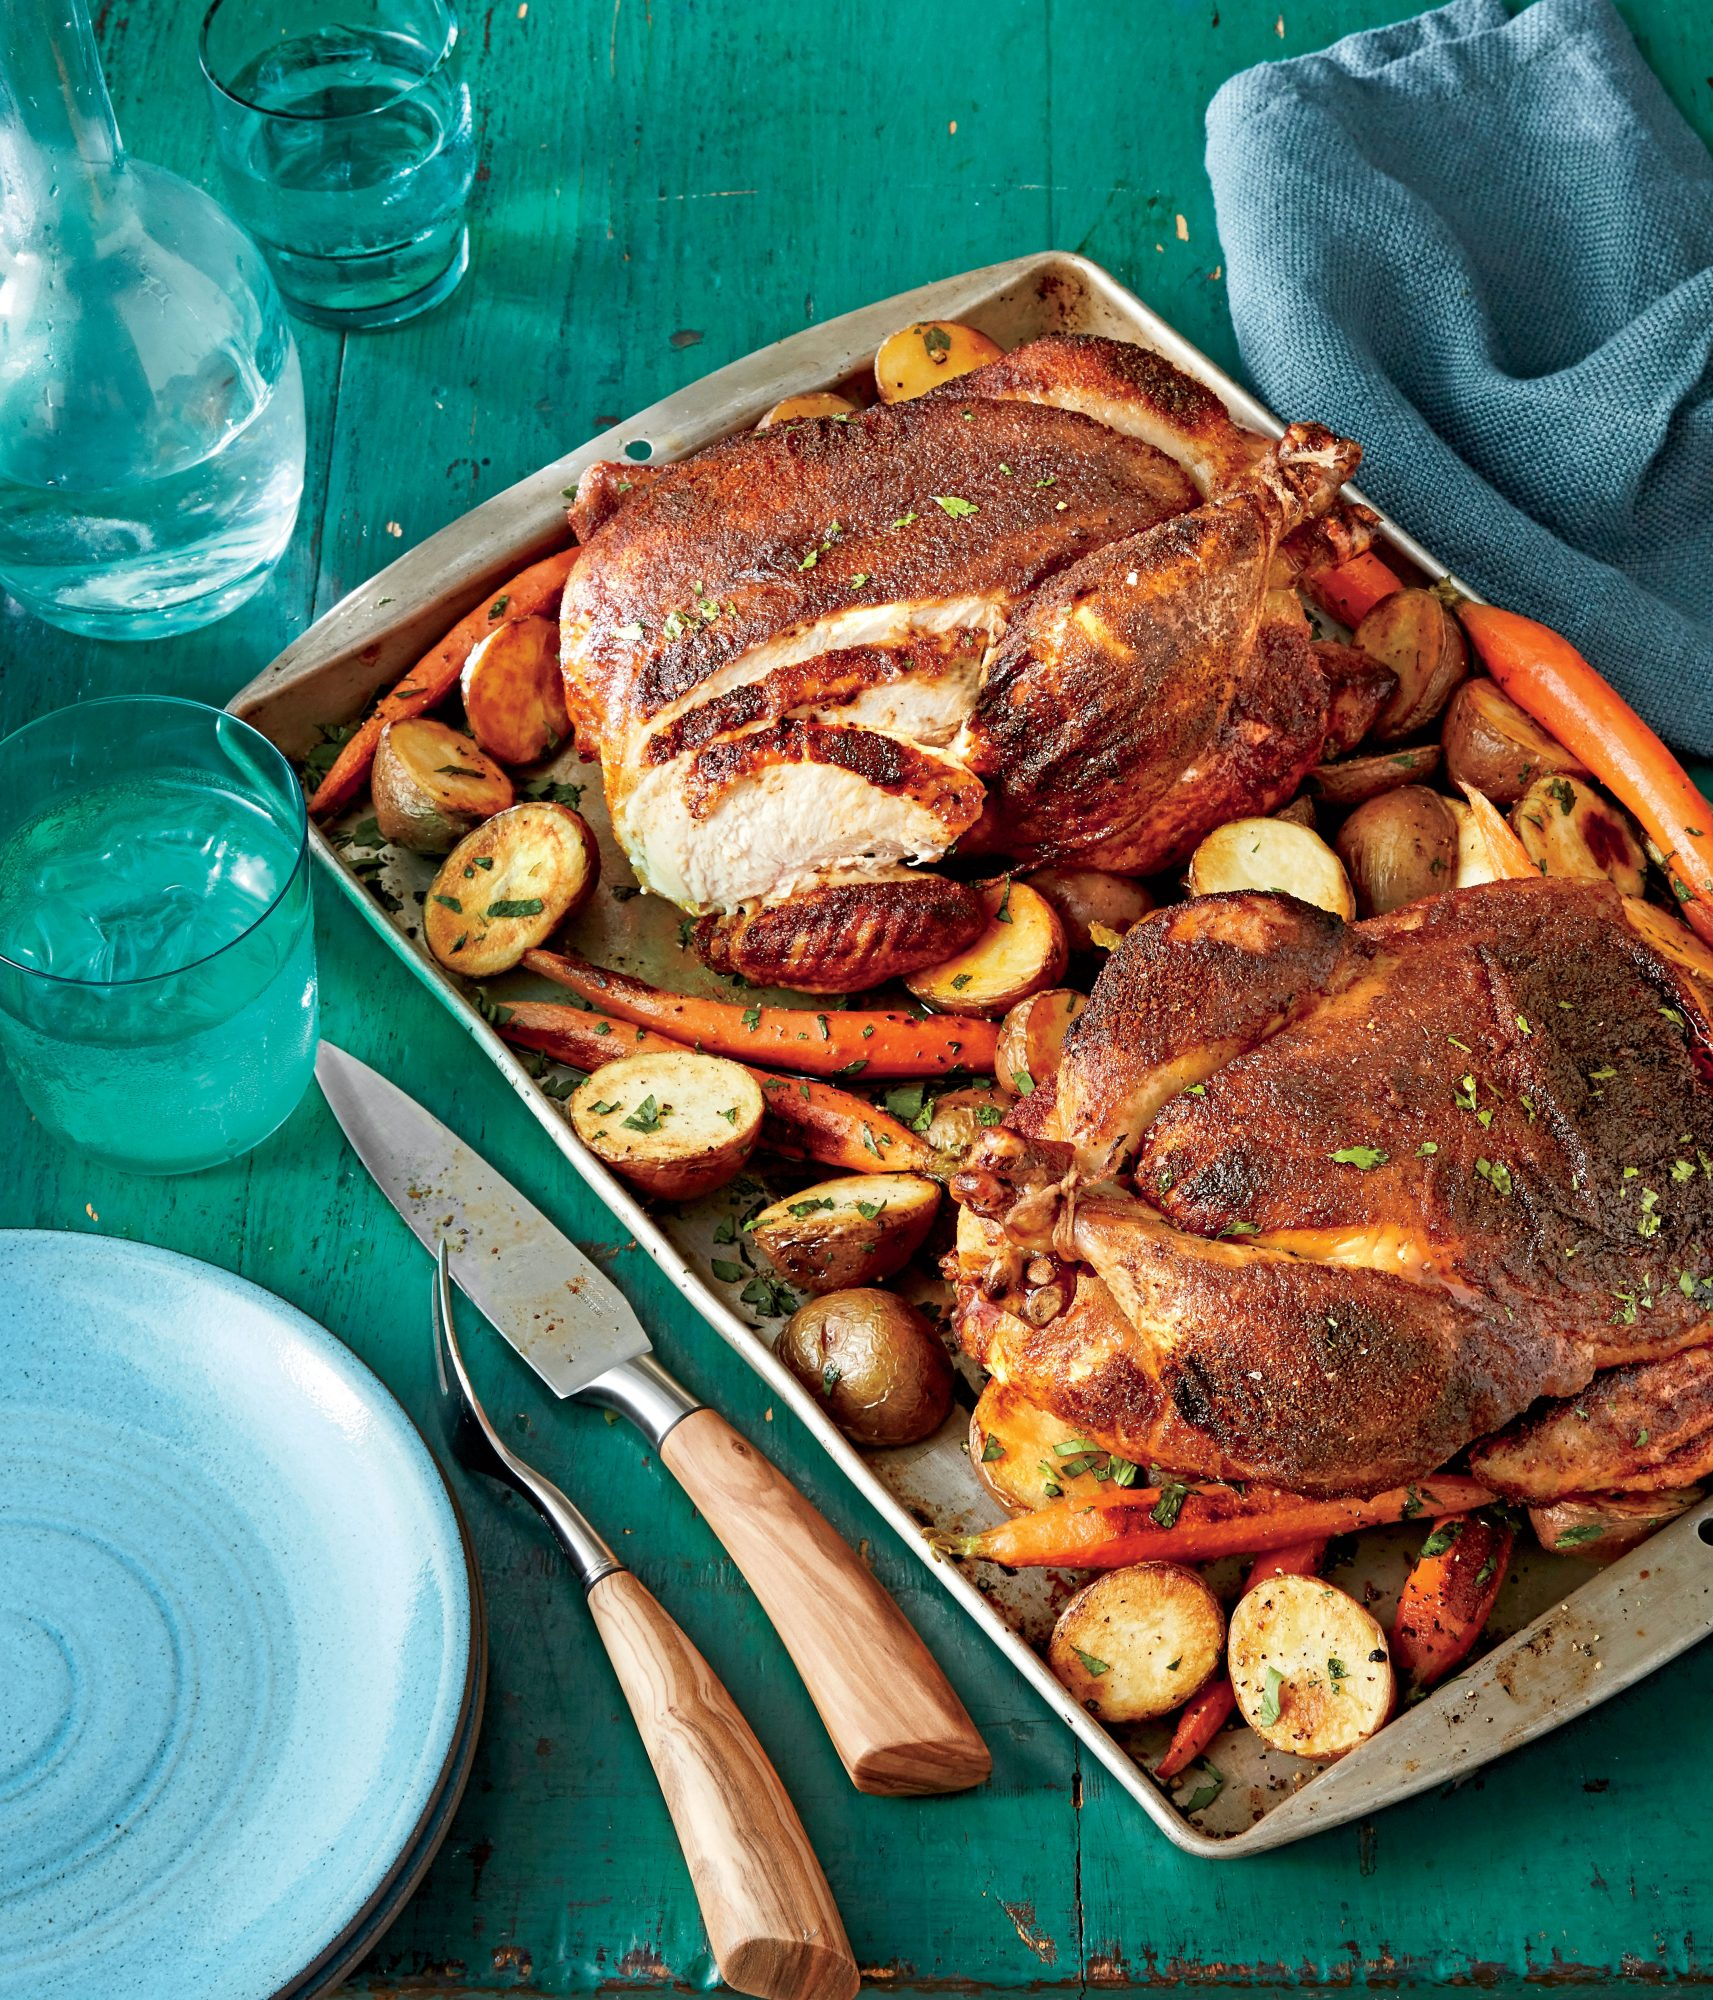 BBQ Rub Roasted Chickens with Potatoes and Carrots